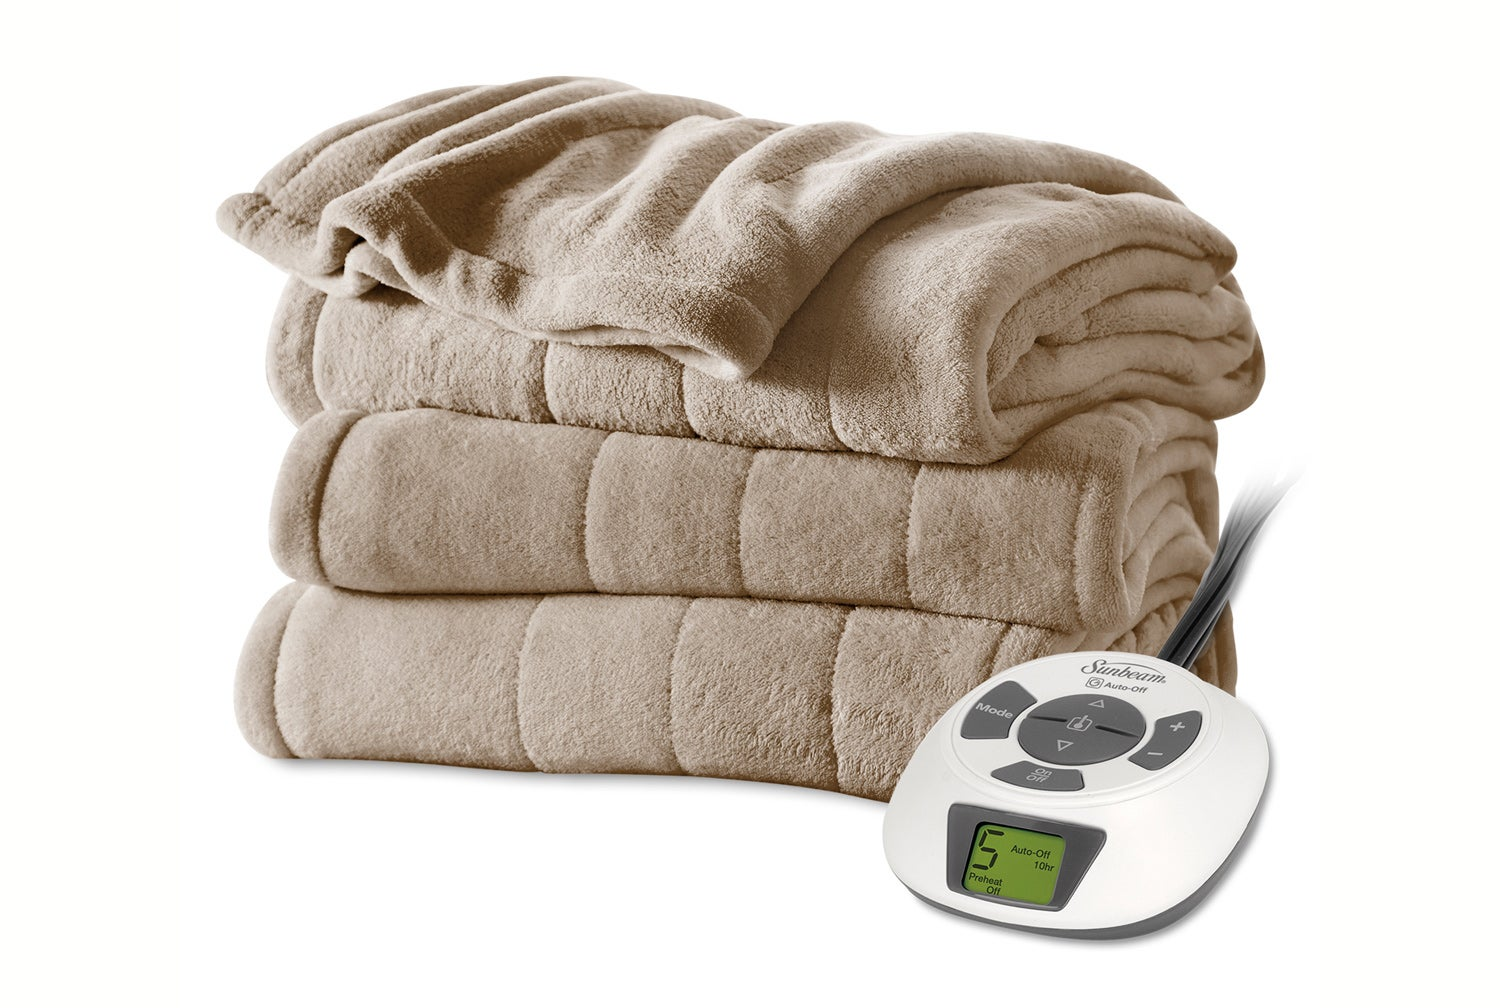 Sunbeam Electric Blanket with Digial Dial